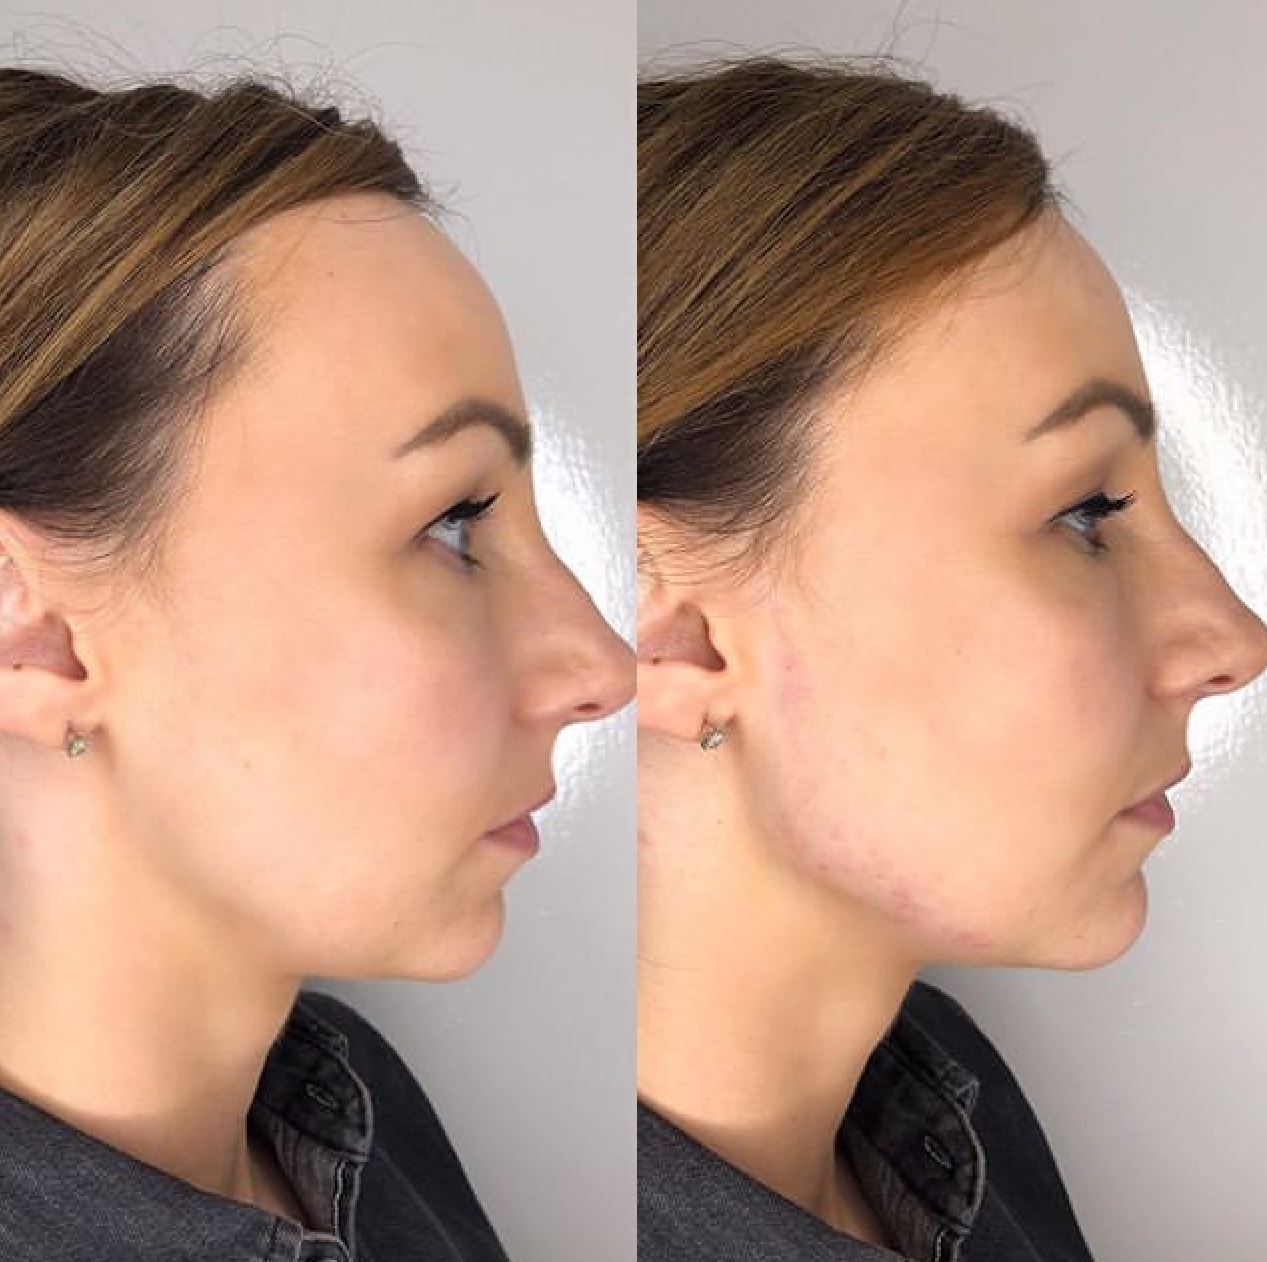 Liquid Nose Job in Cheshire